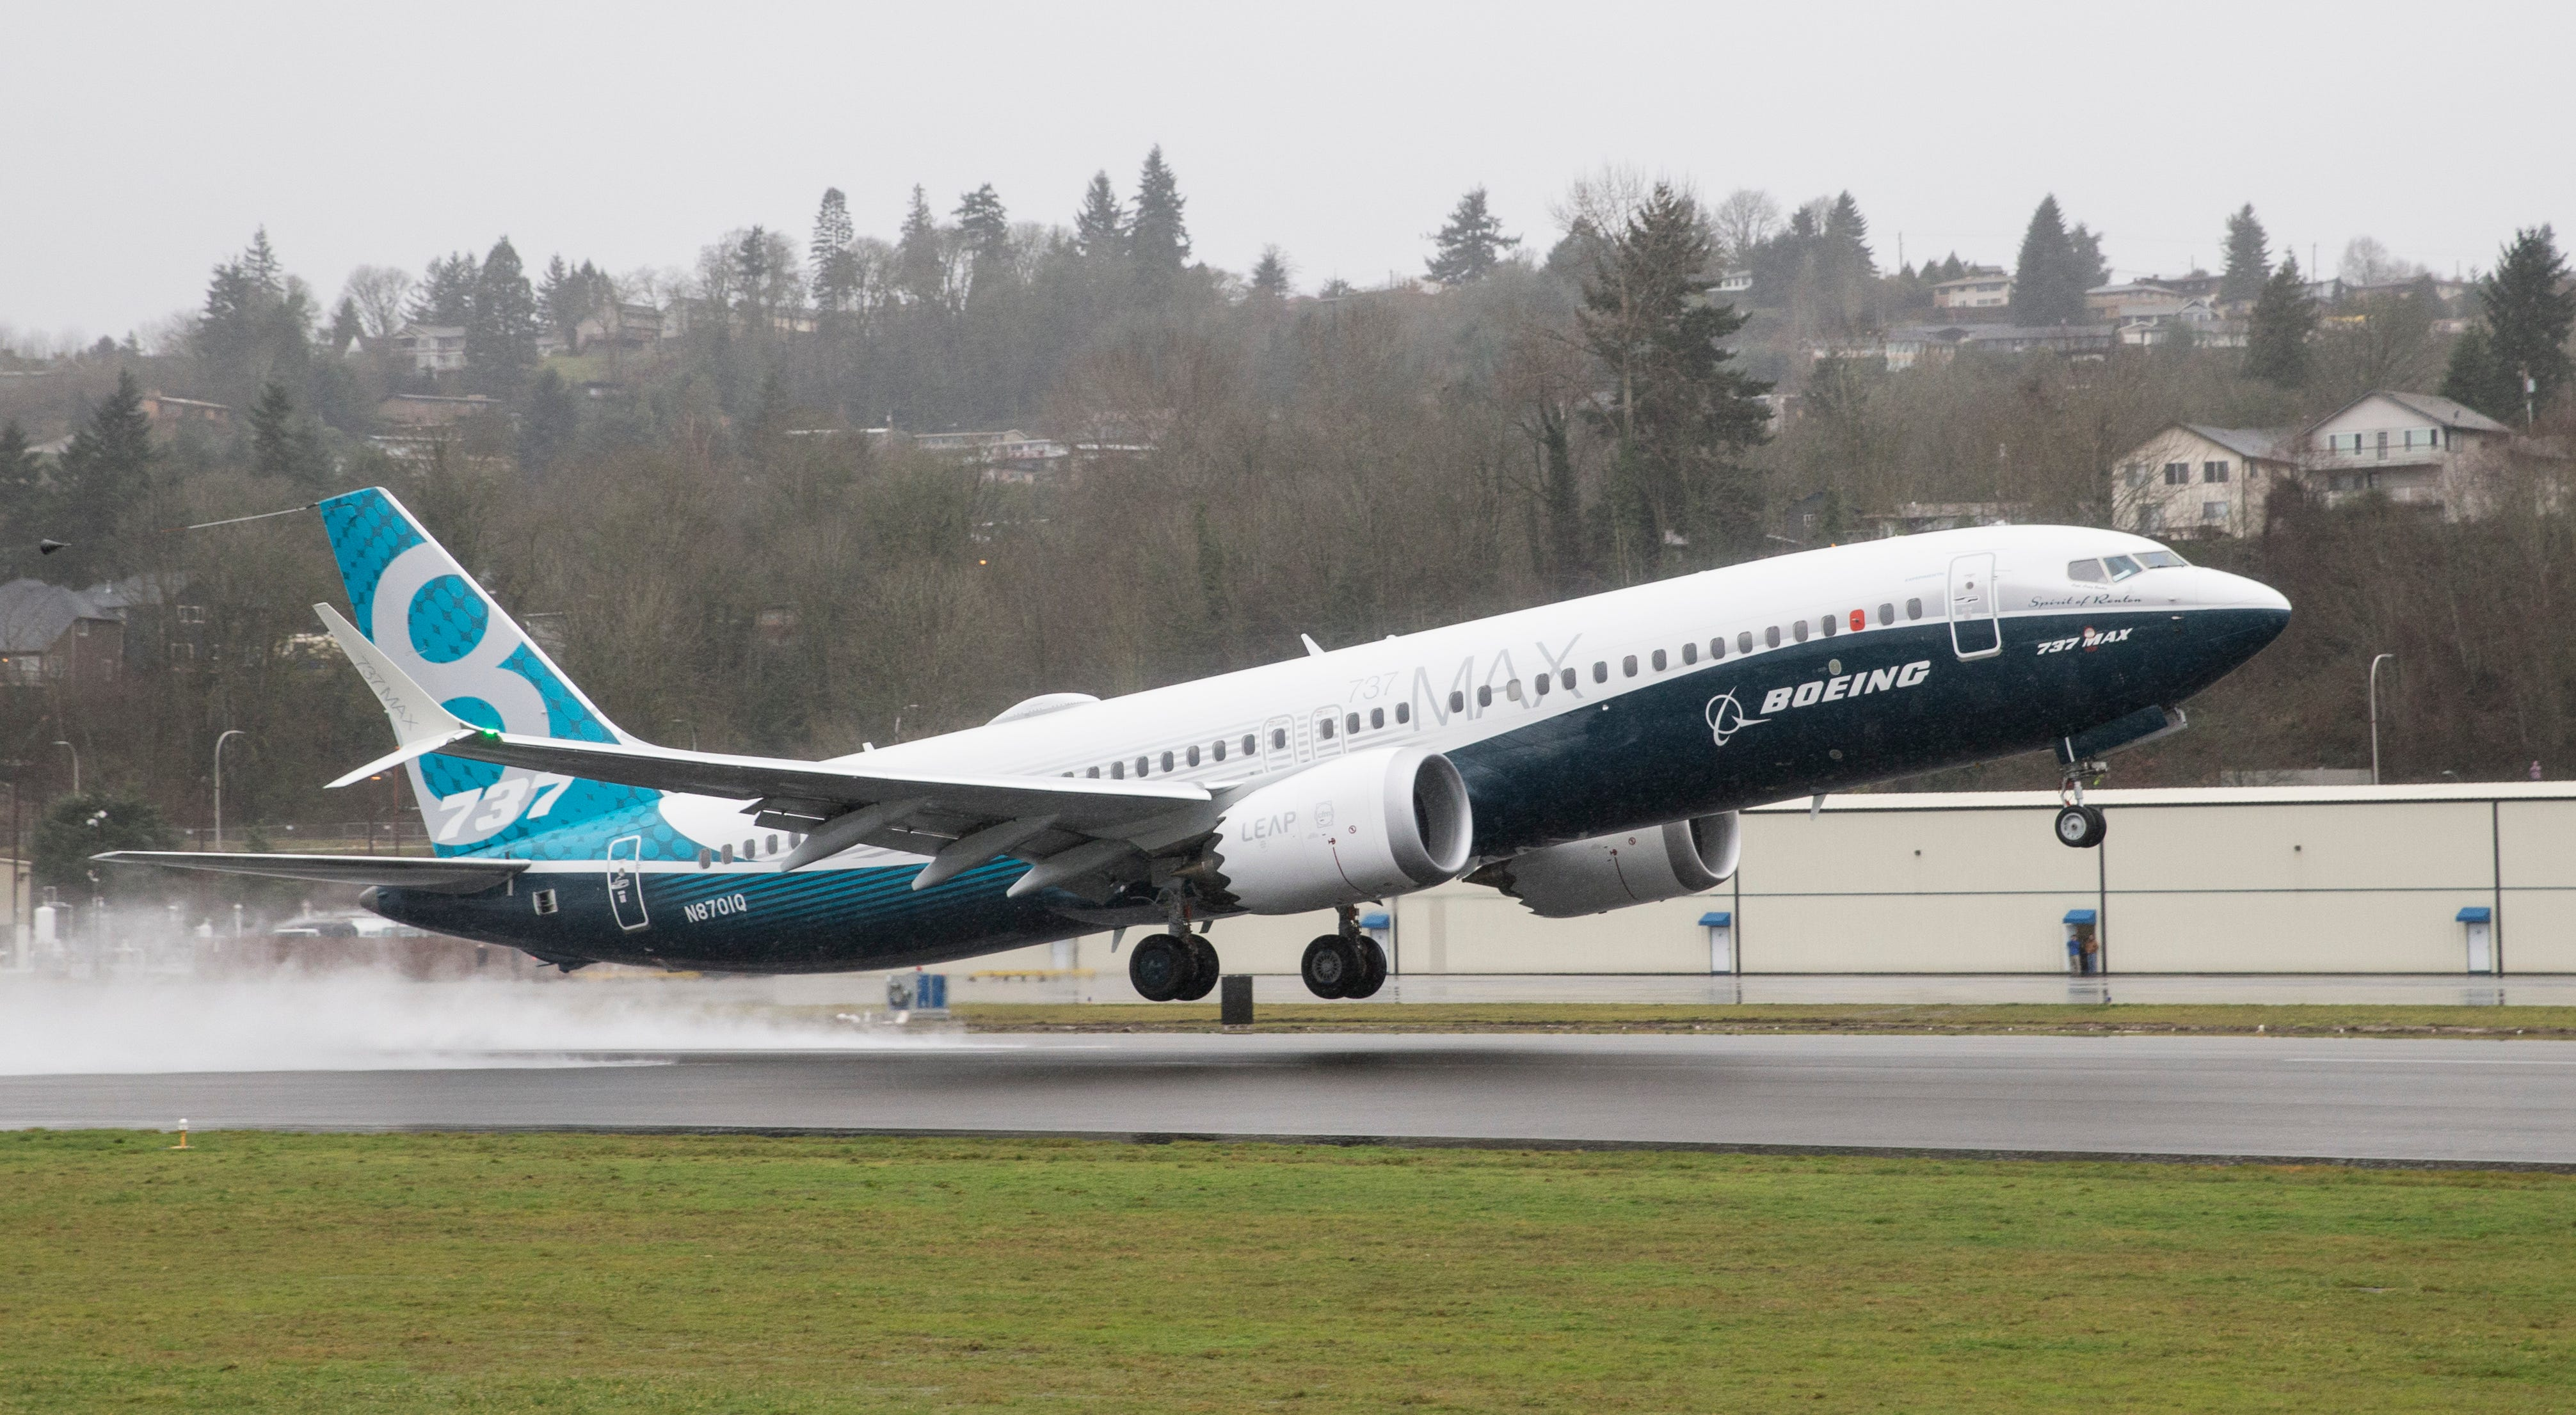 RENTON, WA - JANUARY 29: A Boeing 737 MAX 8 airliner lifts off for its first flight on January 29, 2016 in Renton, Washington. The 737 MAX is the newest of Boeing's most popular airliner featuring more futel efficient engines and redesigned wings. (Photo by Stephen Brashear/Getty Images) ORG XMIT: 602036771 ORIG FILE ID: 507411876